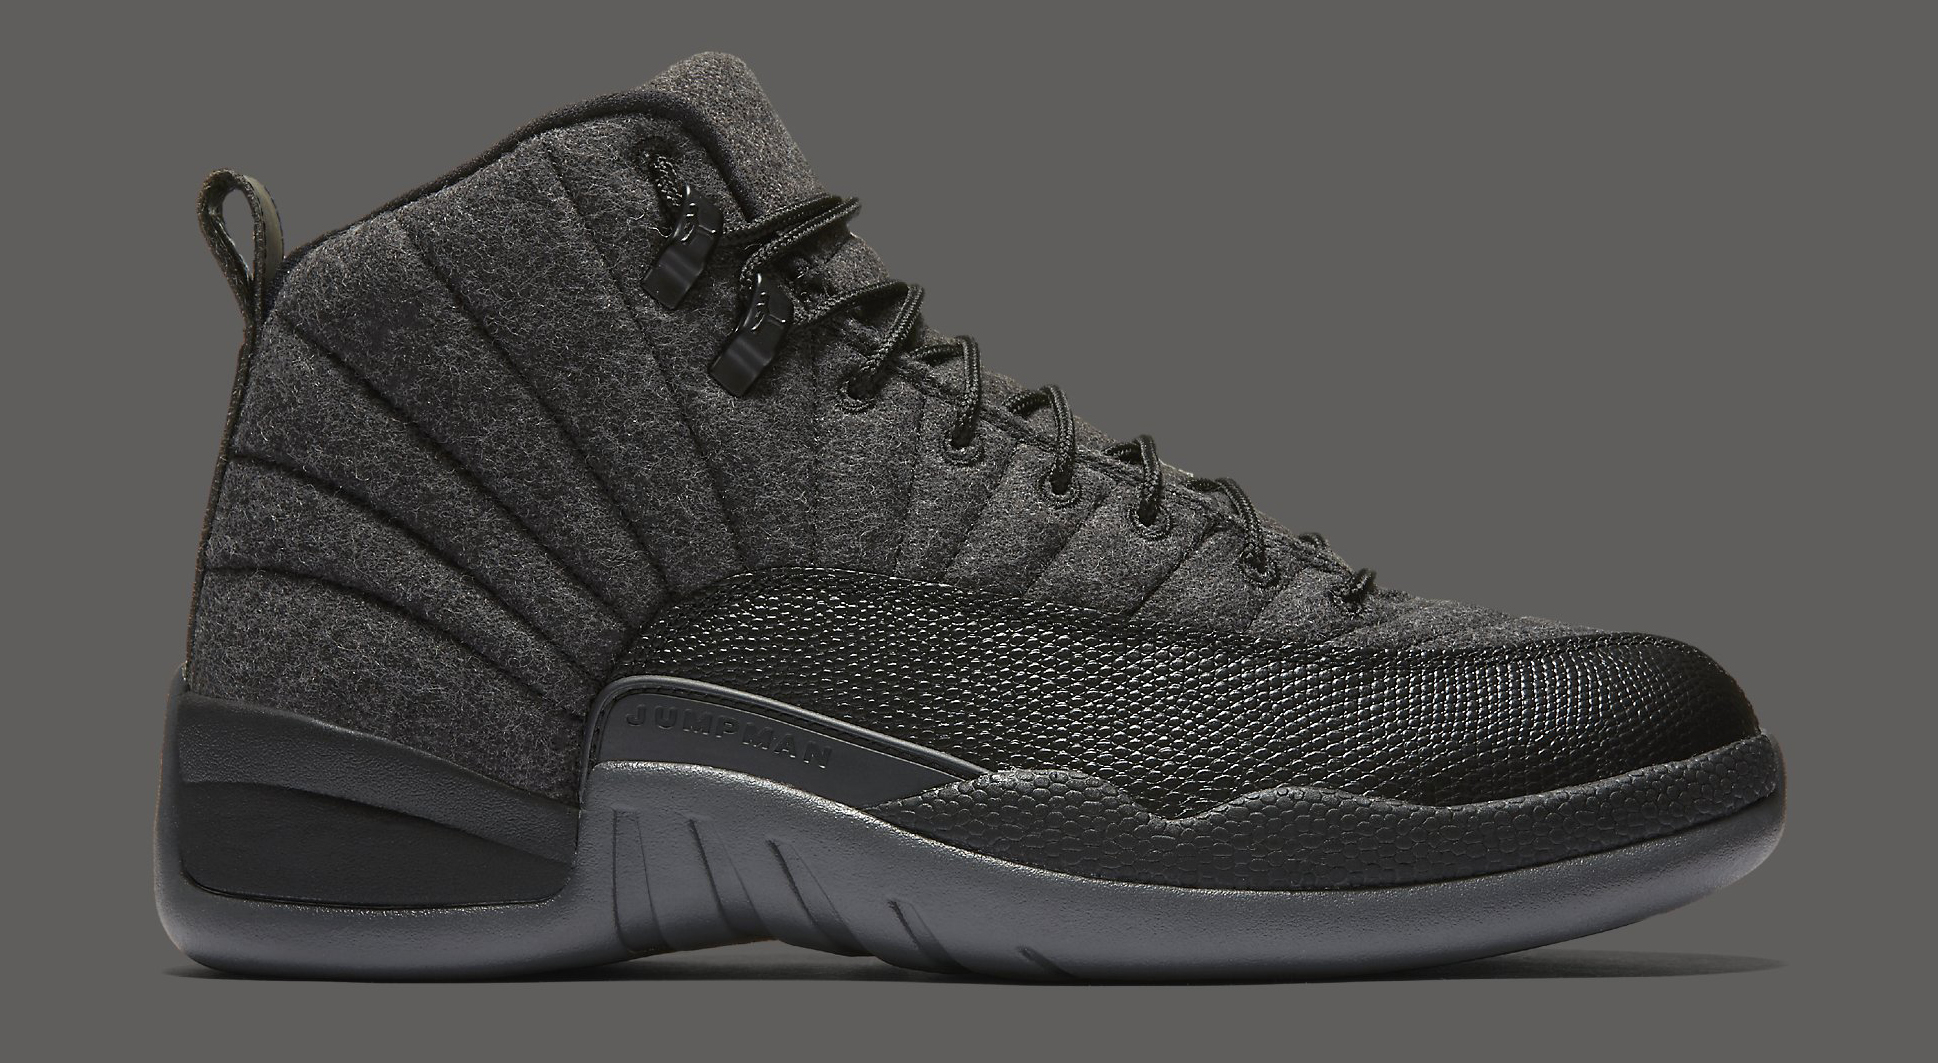 Wool Jordan 12 852627-003 Profile